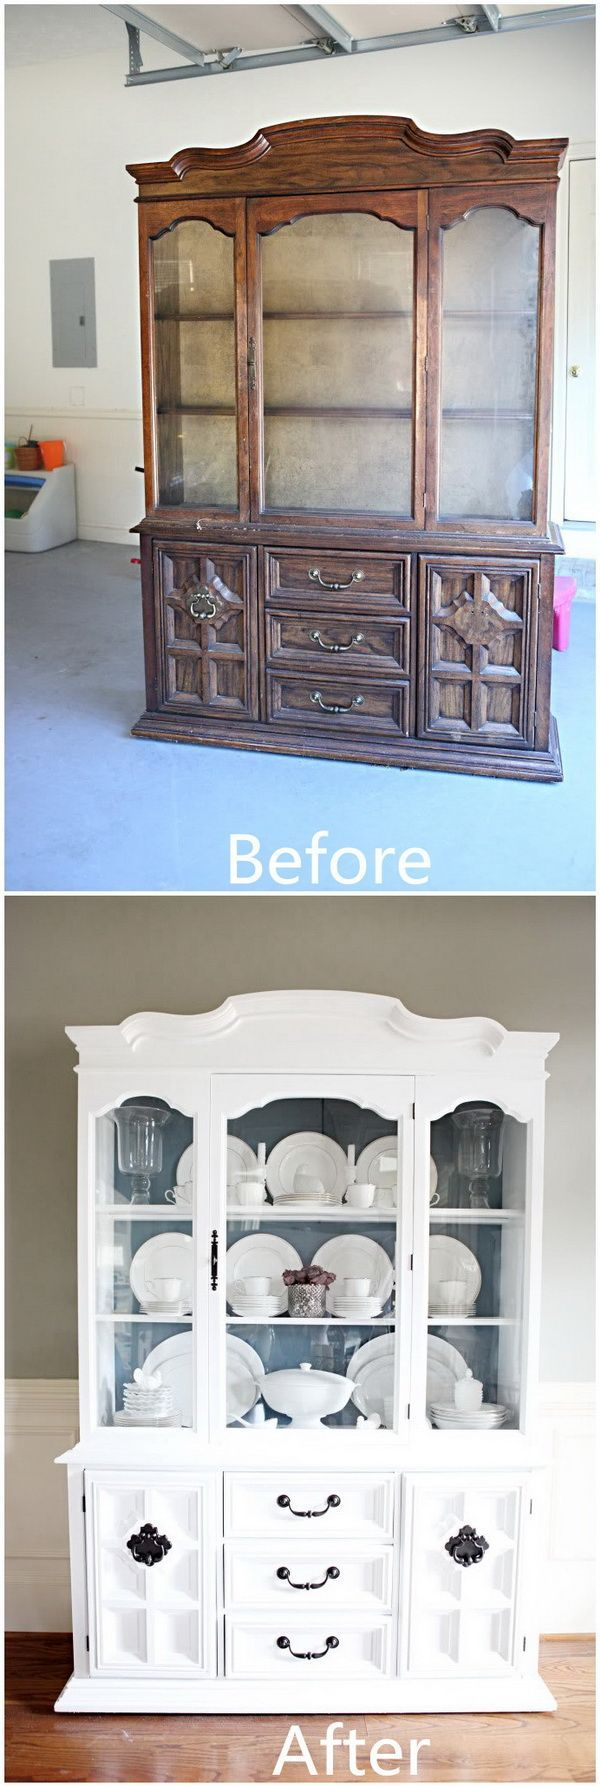 Best of Before & After Furniture Makeovers: Creative DIY Ways to Recover ...